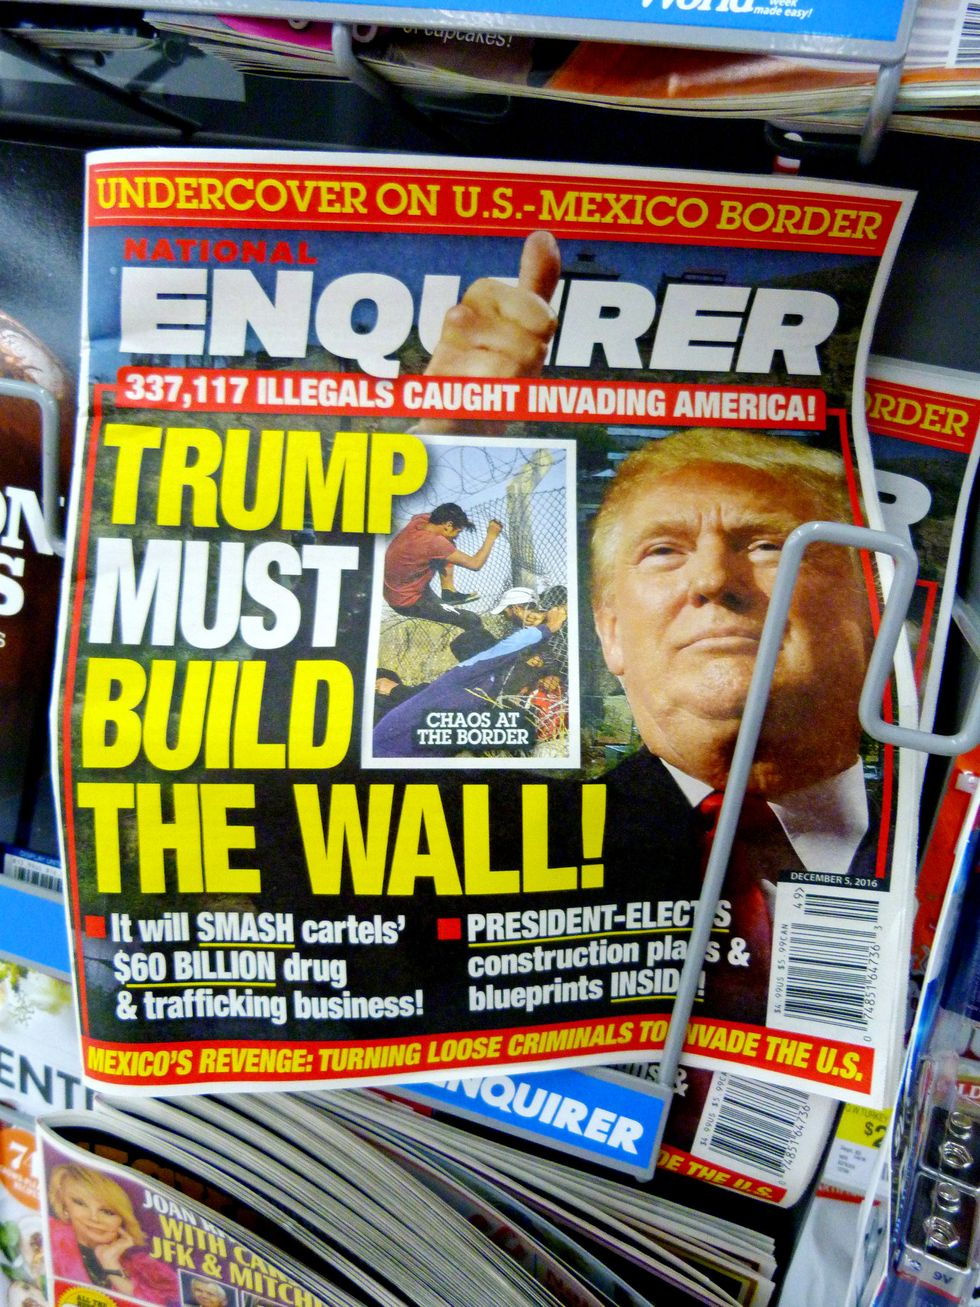 Here Are 5 of the Wildest, Wackiest, Most Outlandish Things David Pecker's American Media Inc. Has Done for Trump